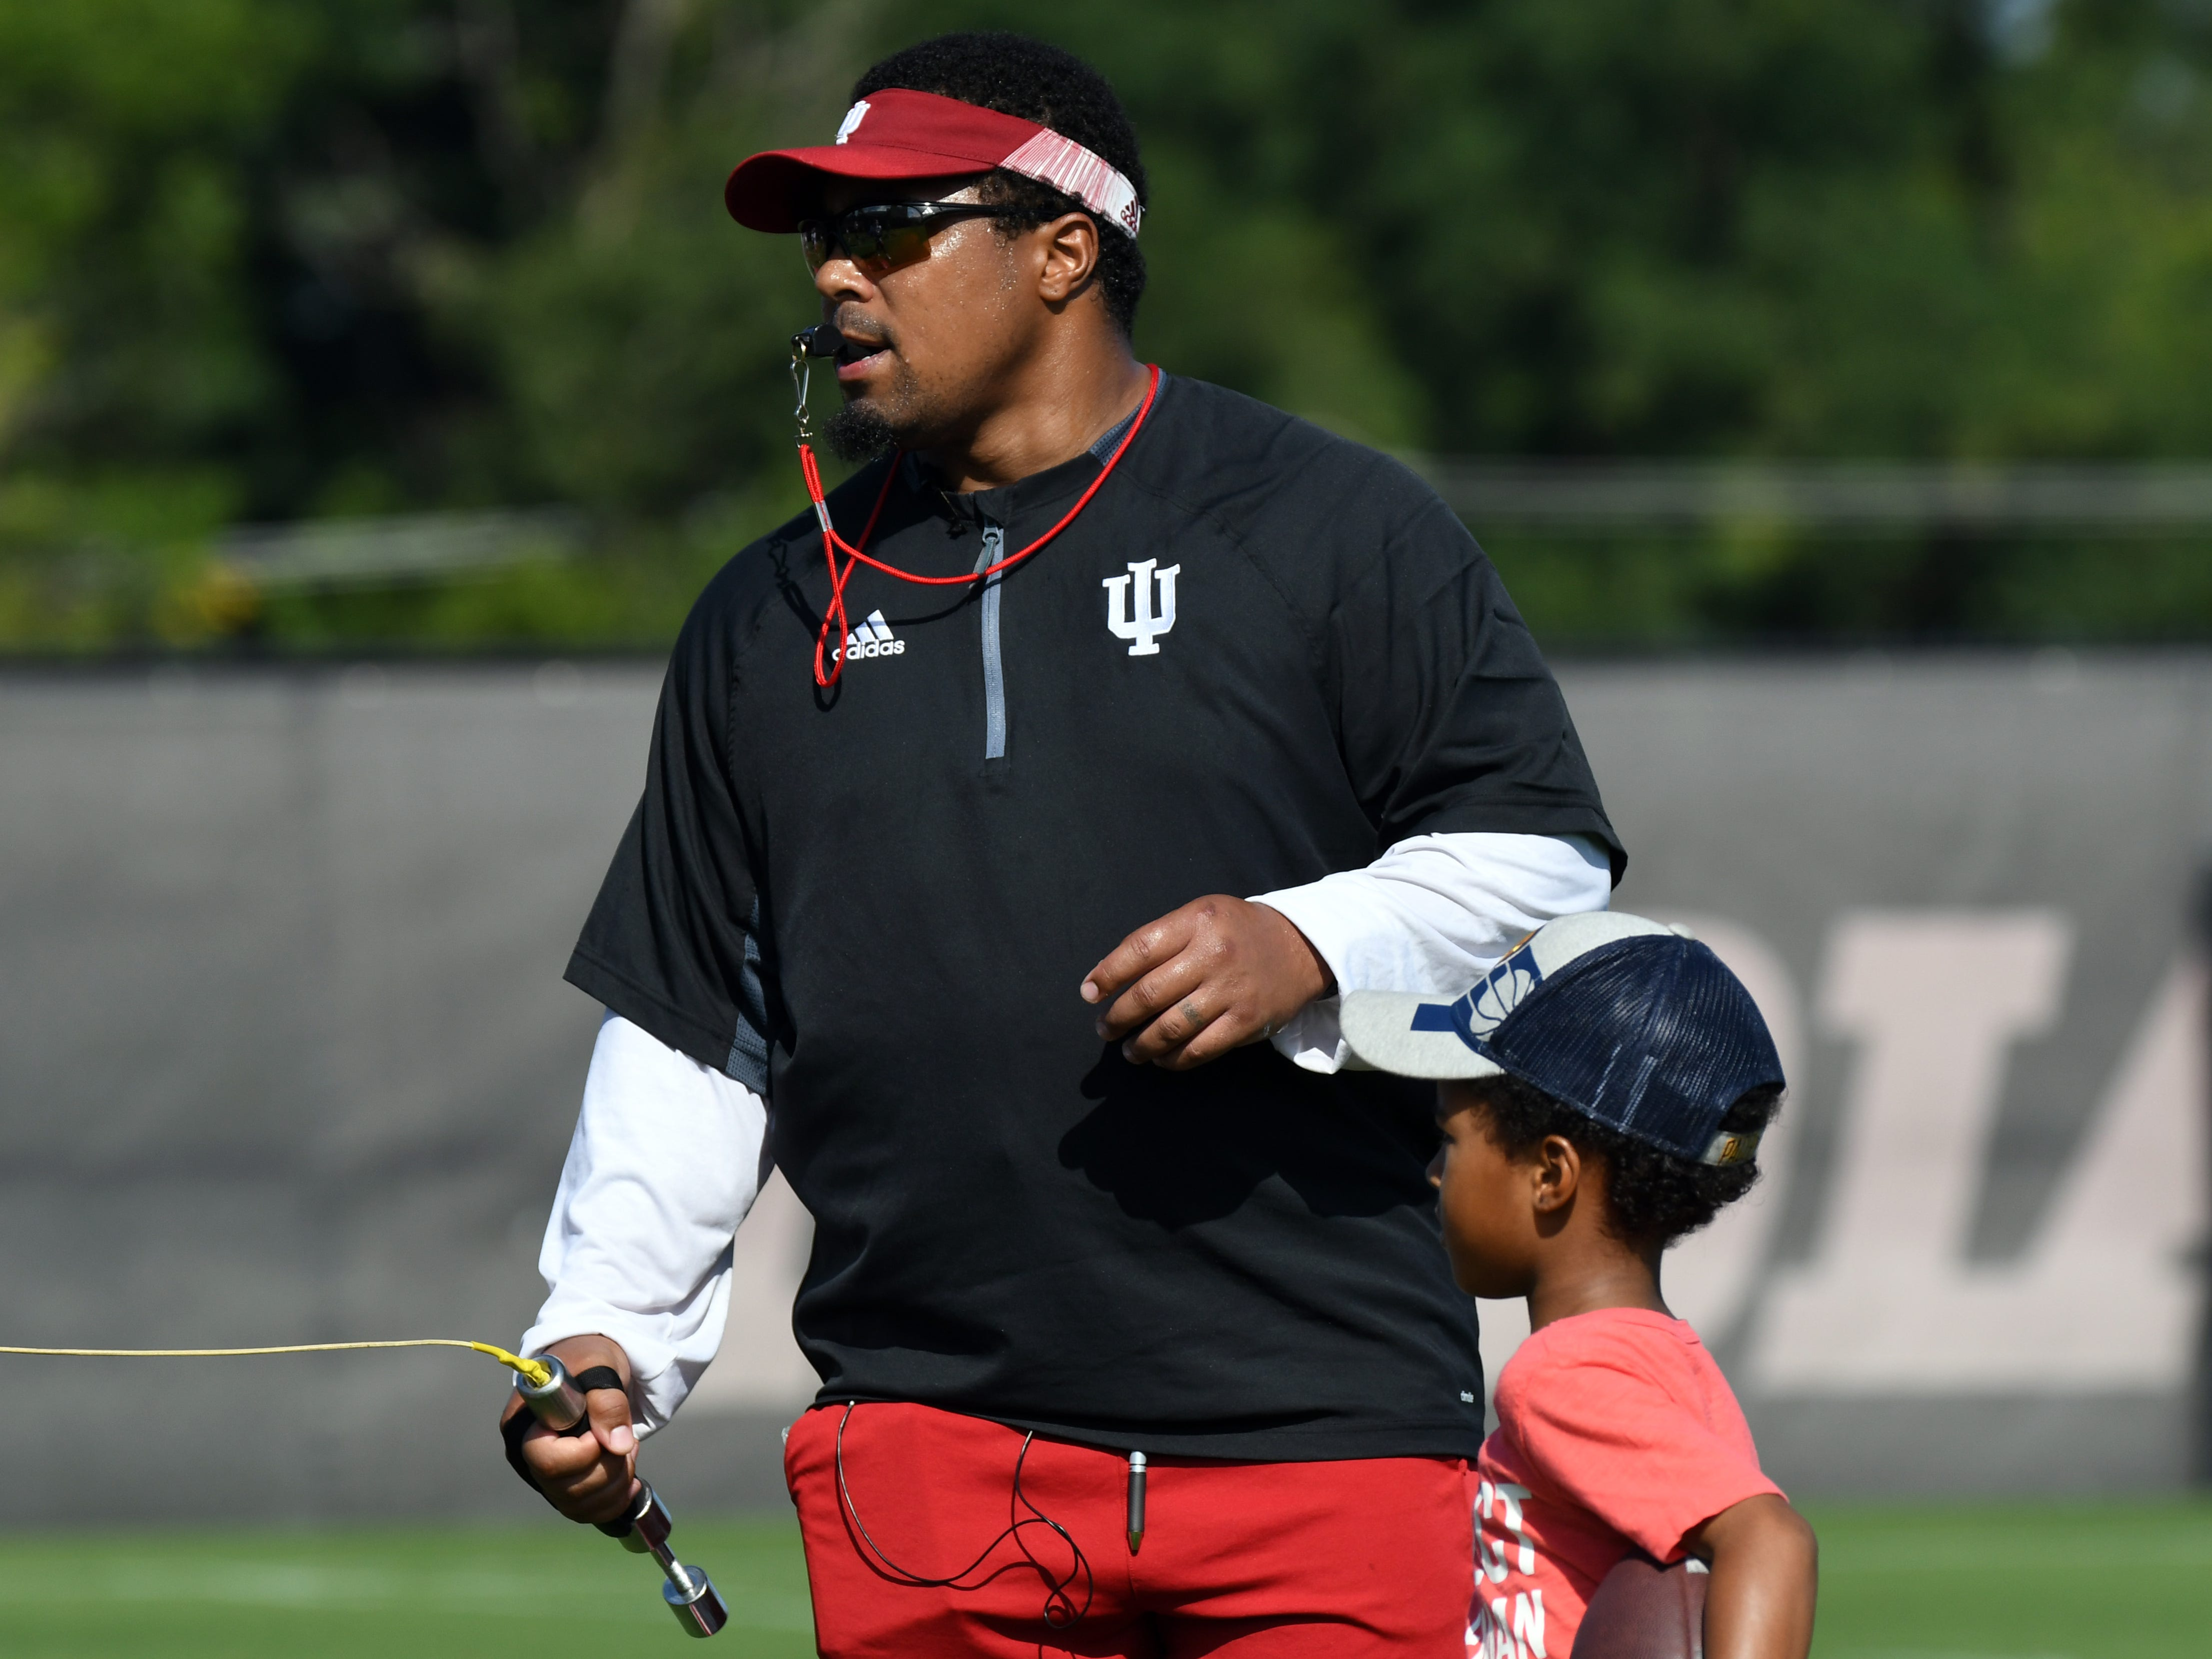 Indiana Hoosiers Assistant Head Coach Mike Hart coaches the running backs during practice at Mellencamp Pavilion in Bloomington, Ind., on Monday, August 6, 2018.